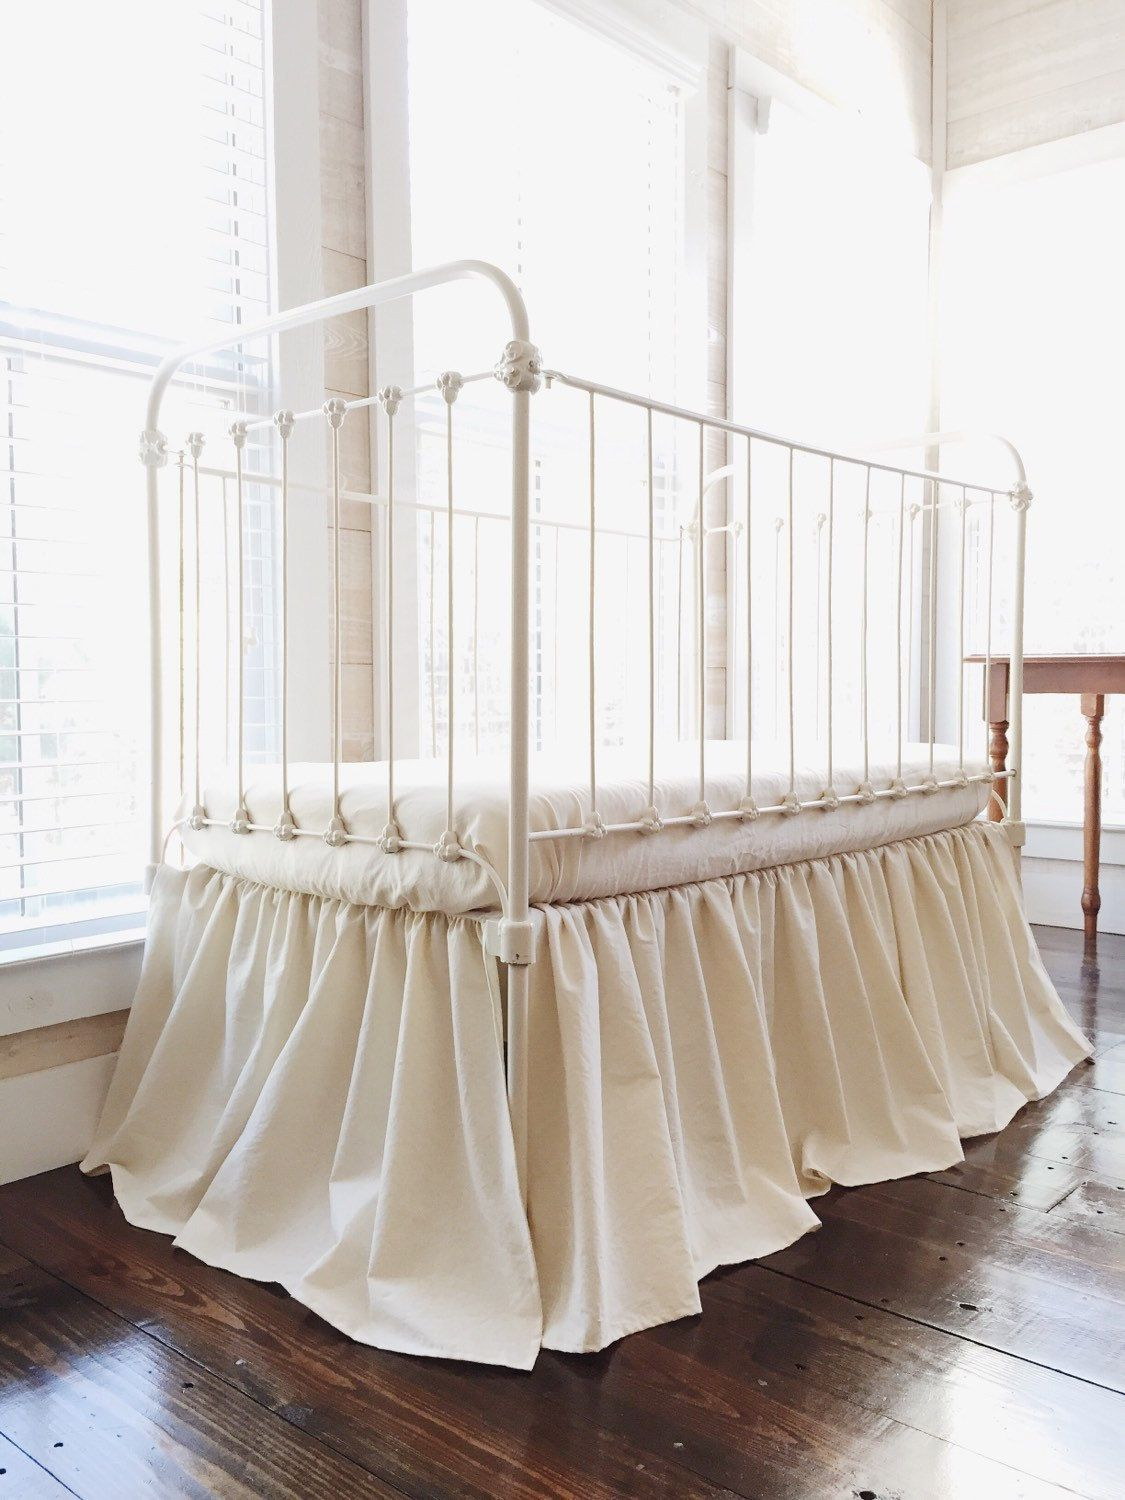 Natural Crib Skirt Neutral Crib Skirt Farmhouse Crib Skirt Baby Bed Skirt Solid Crib Skirt Cotton Crib Skirt Plain Baby Crib Skirt Crib Bedding Boy Farmhouse Cribs Baby Cribs